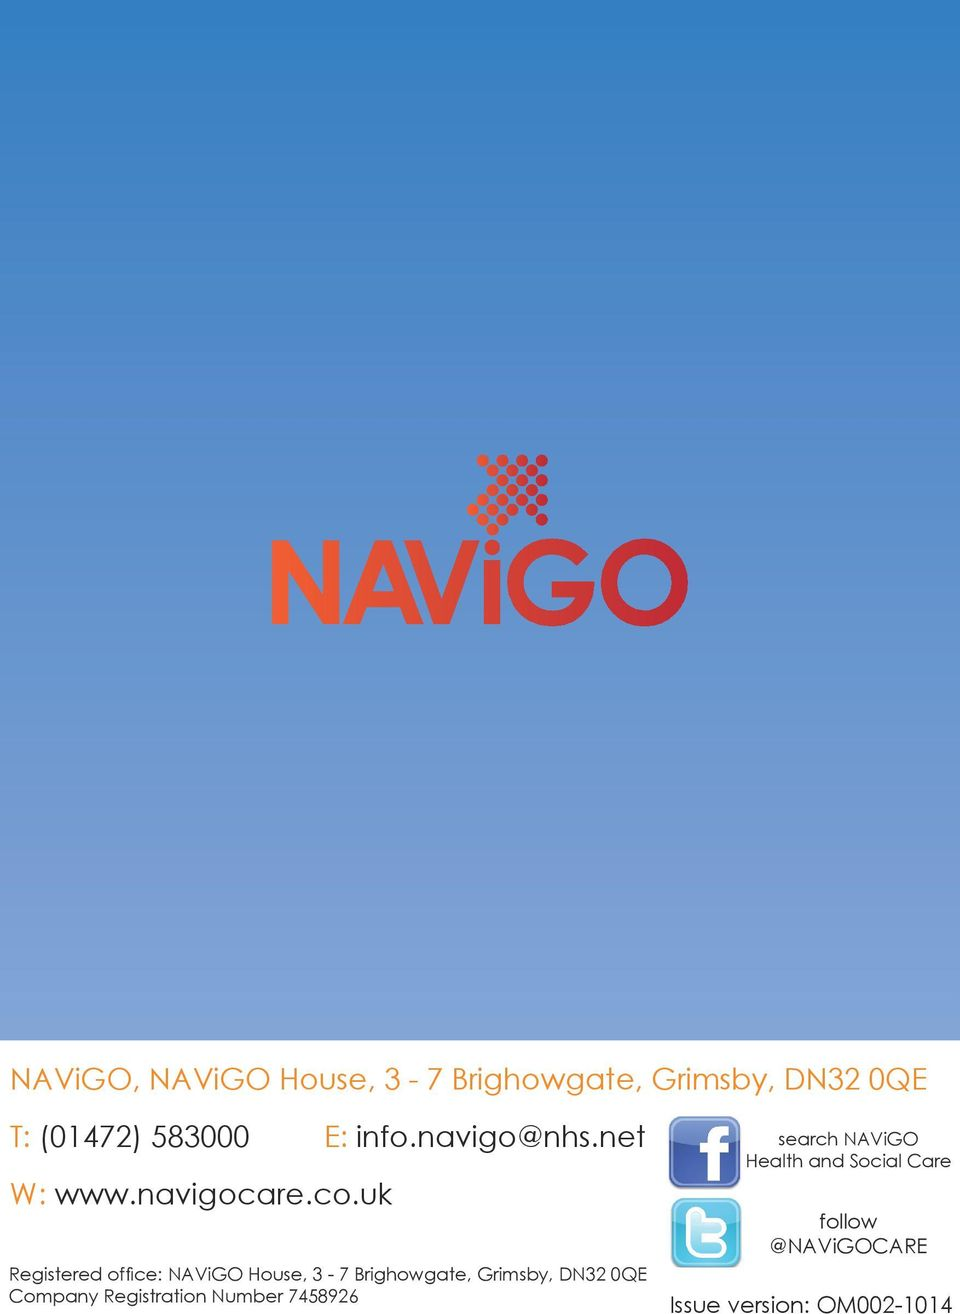 uk Registered office: NAViGO House, 3-7 Brighowgate, Grimsby, DN32 0QE